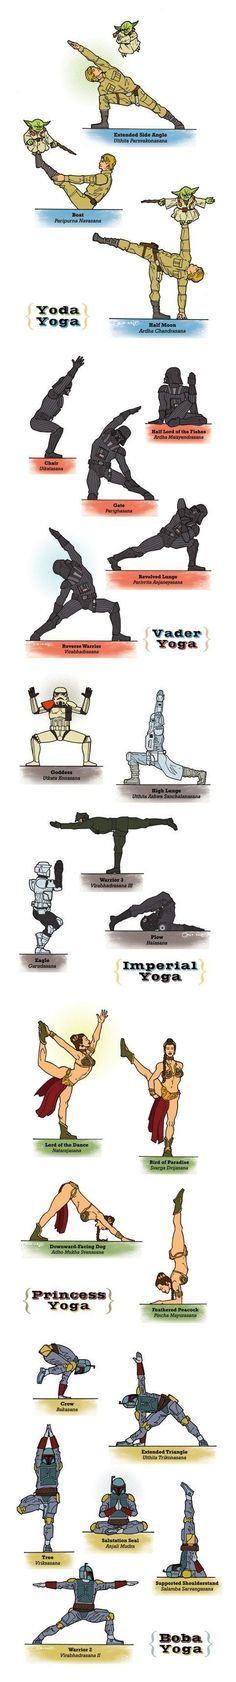 Star Wars yoga.  for @Melissa Squires Squires Squires Bender my inner nerd is going nuts